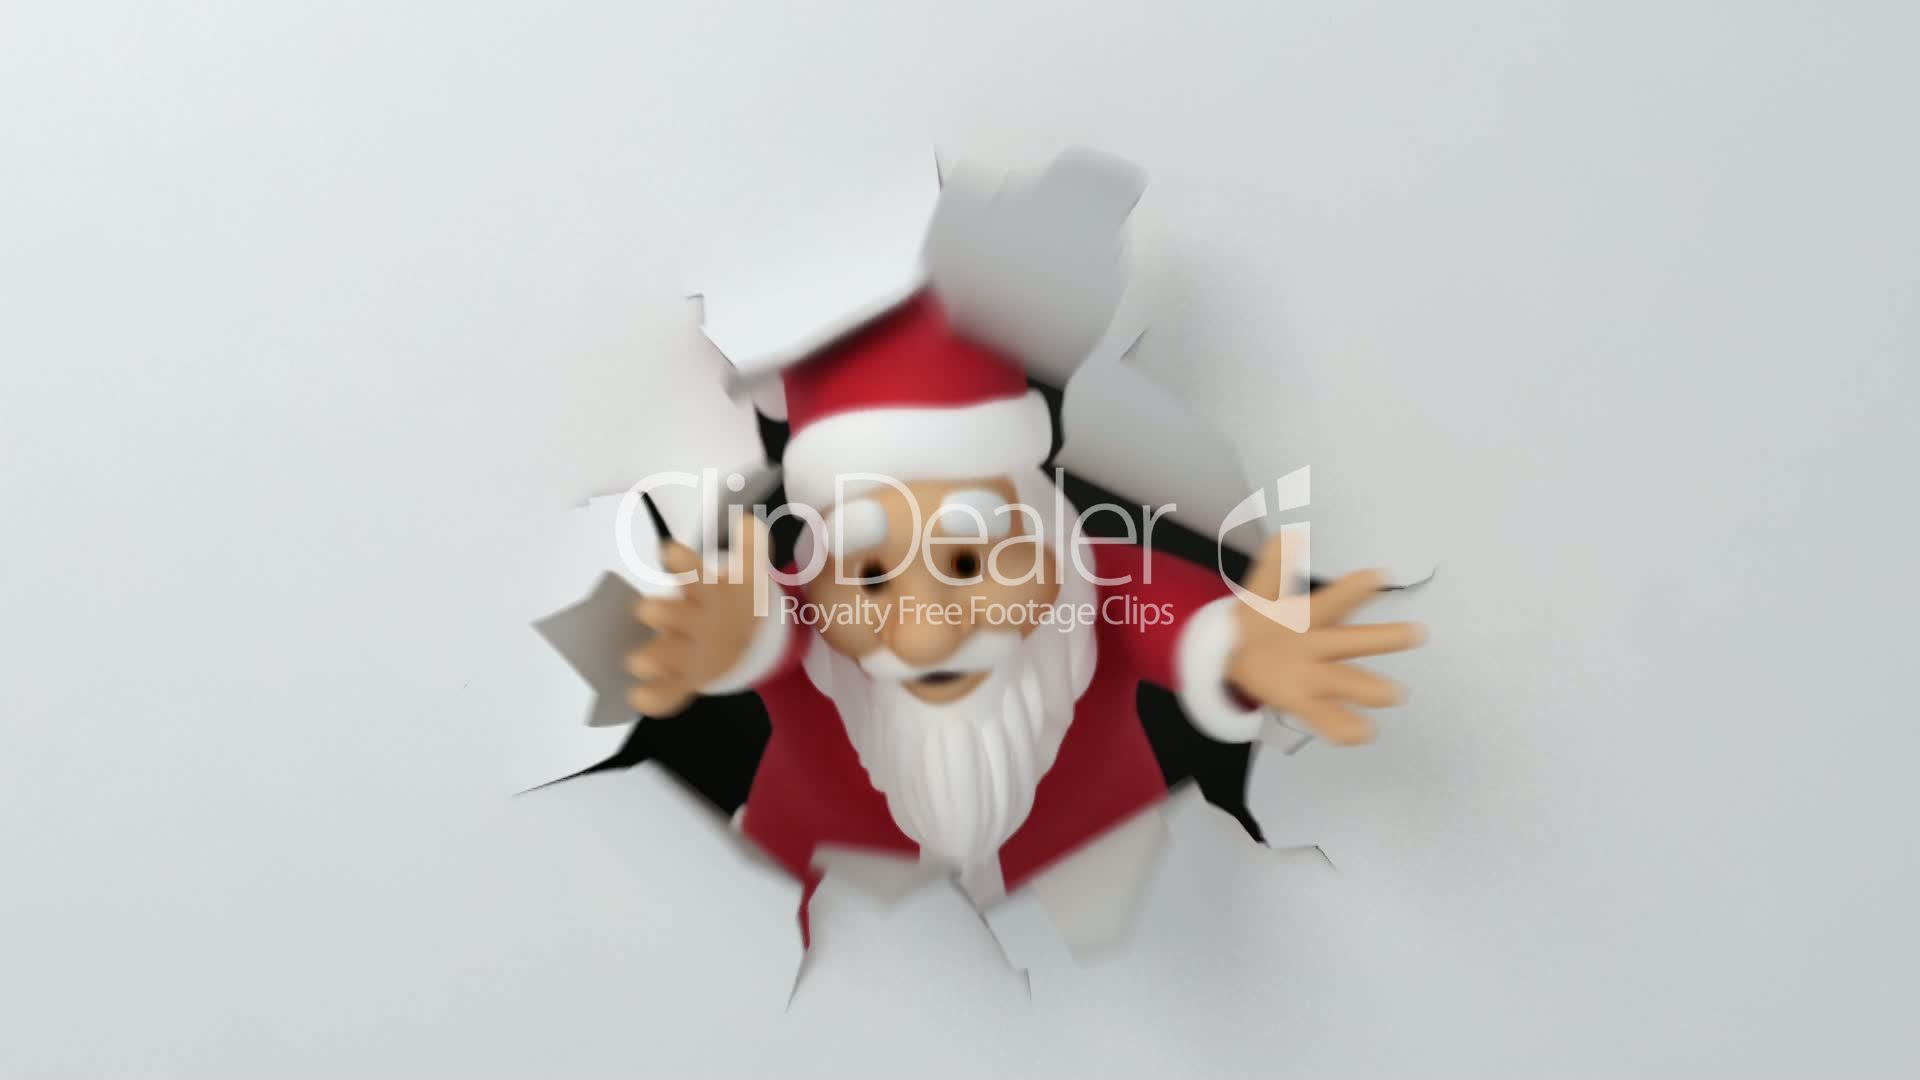 Santa tears the paper royalty free video and stock footage royalty free videos kristyandbryce Choice Image